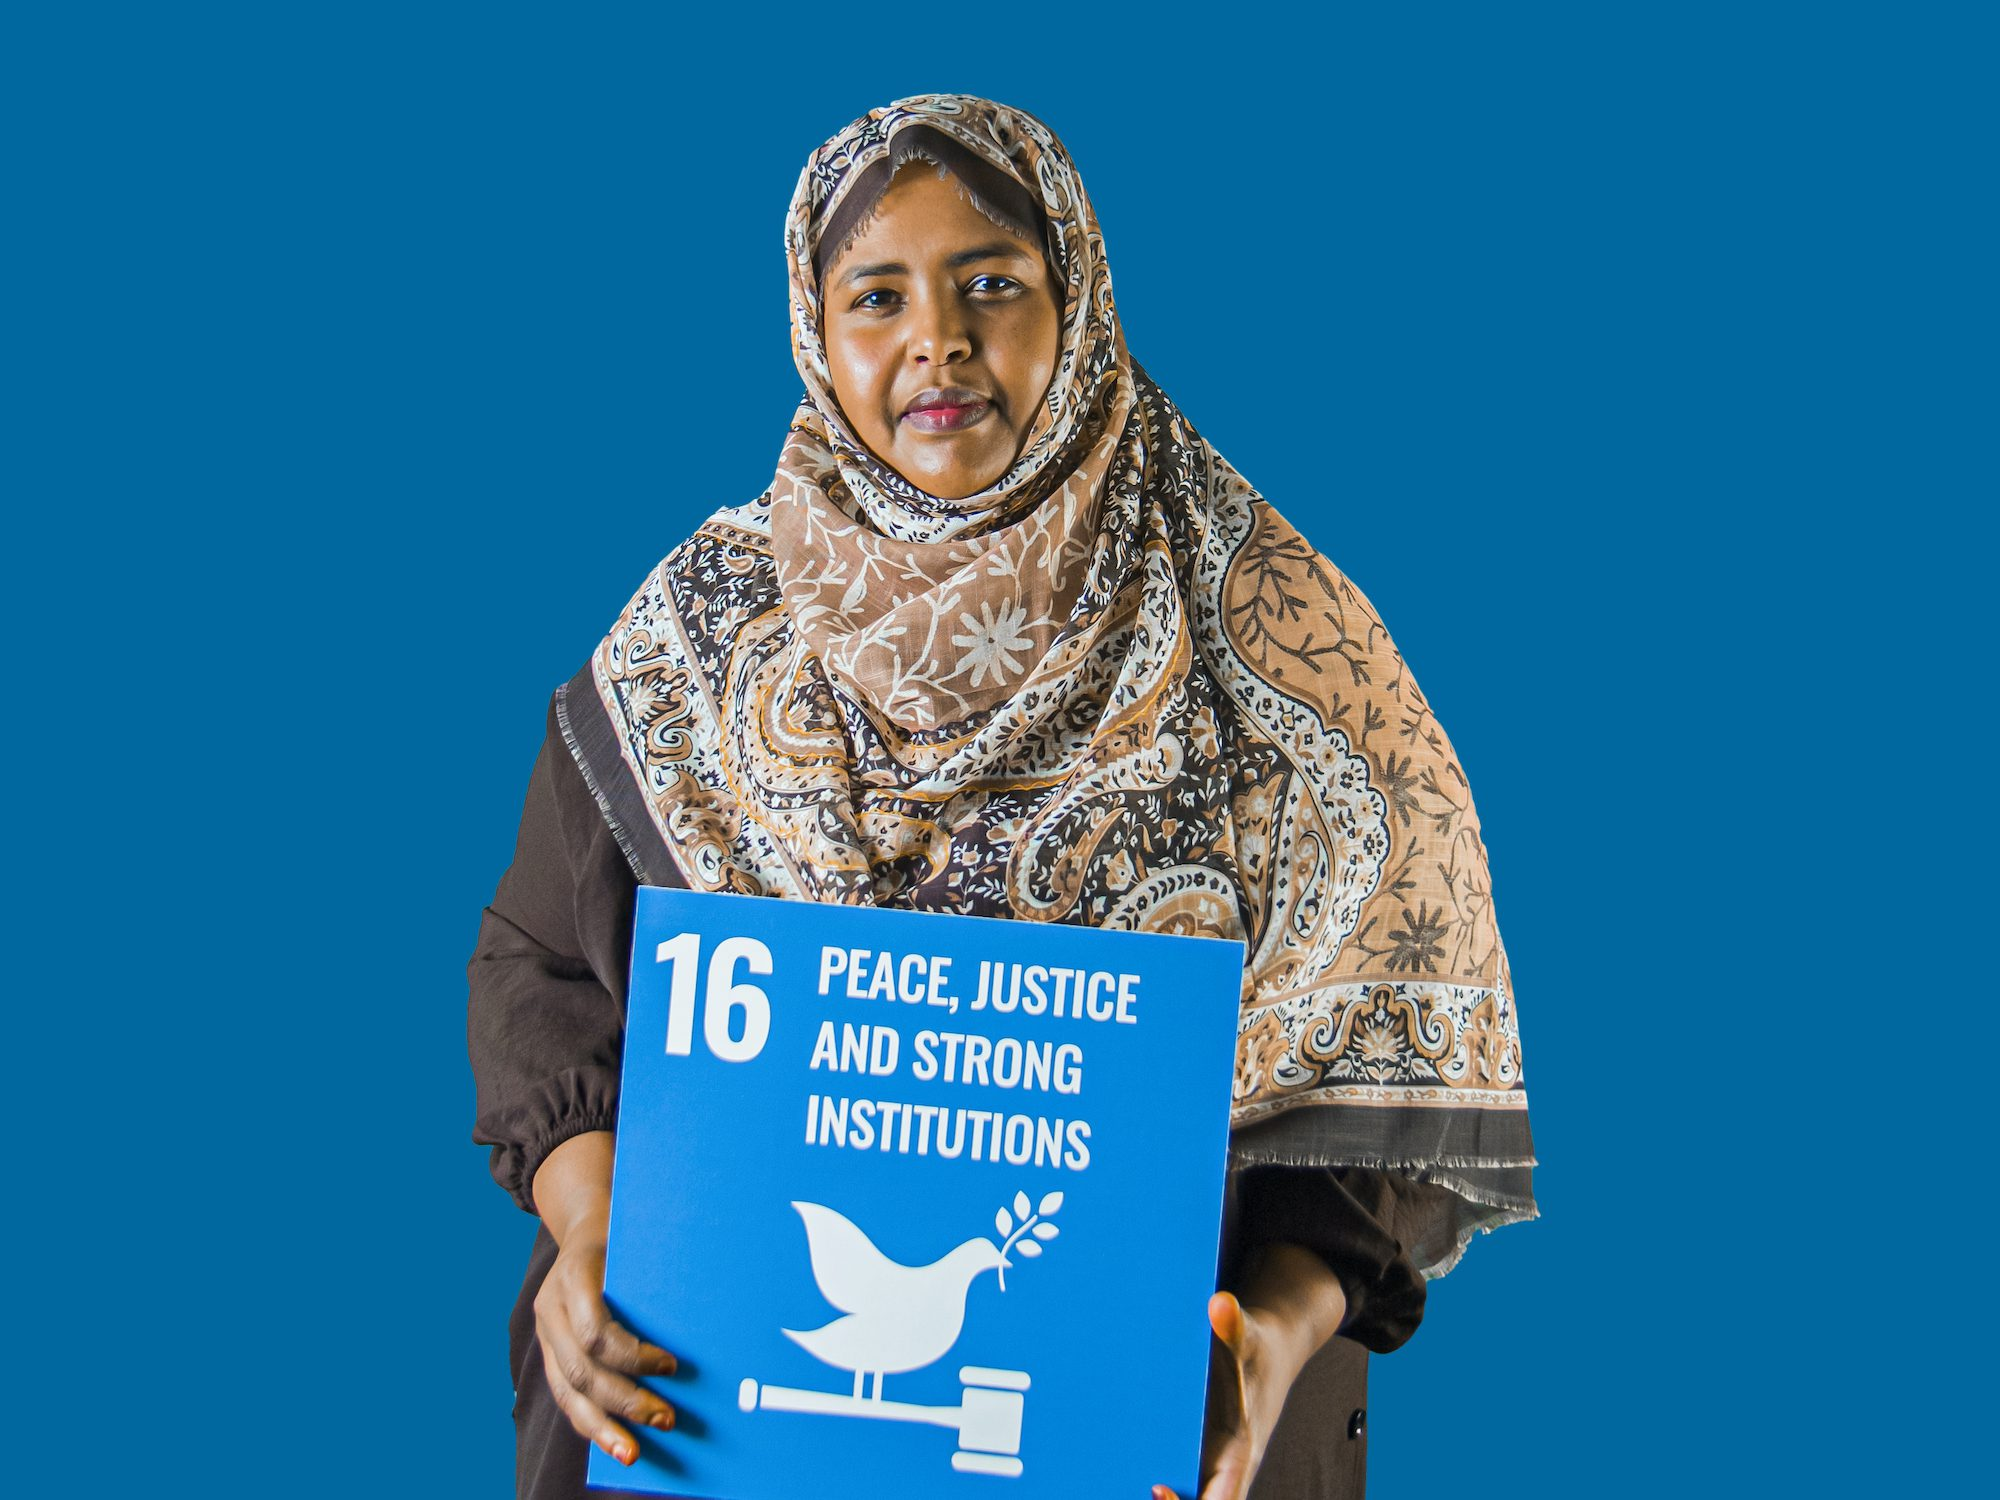 16 - Peace Justice and Strong Institutions